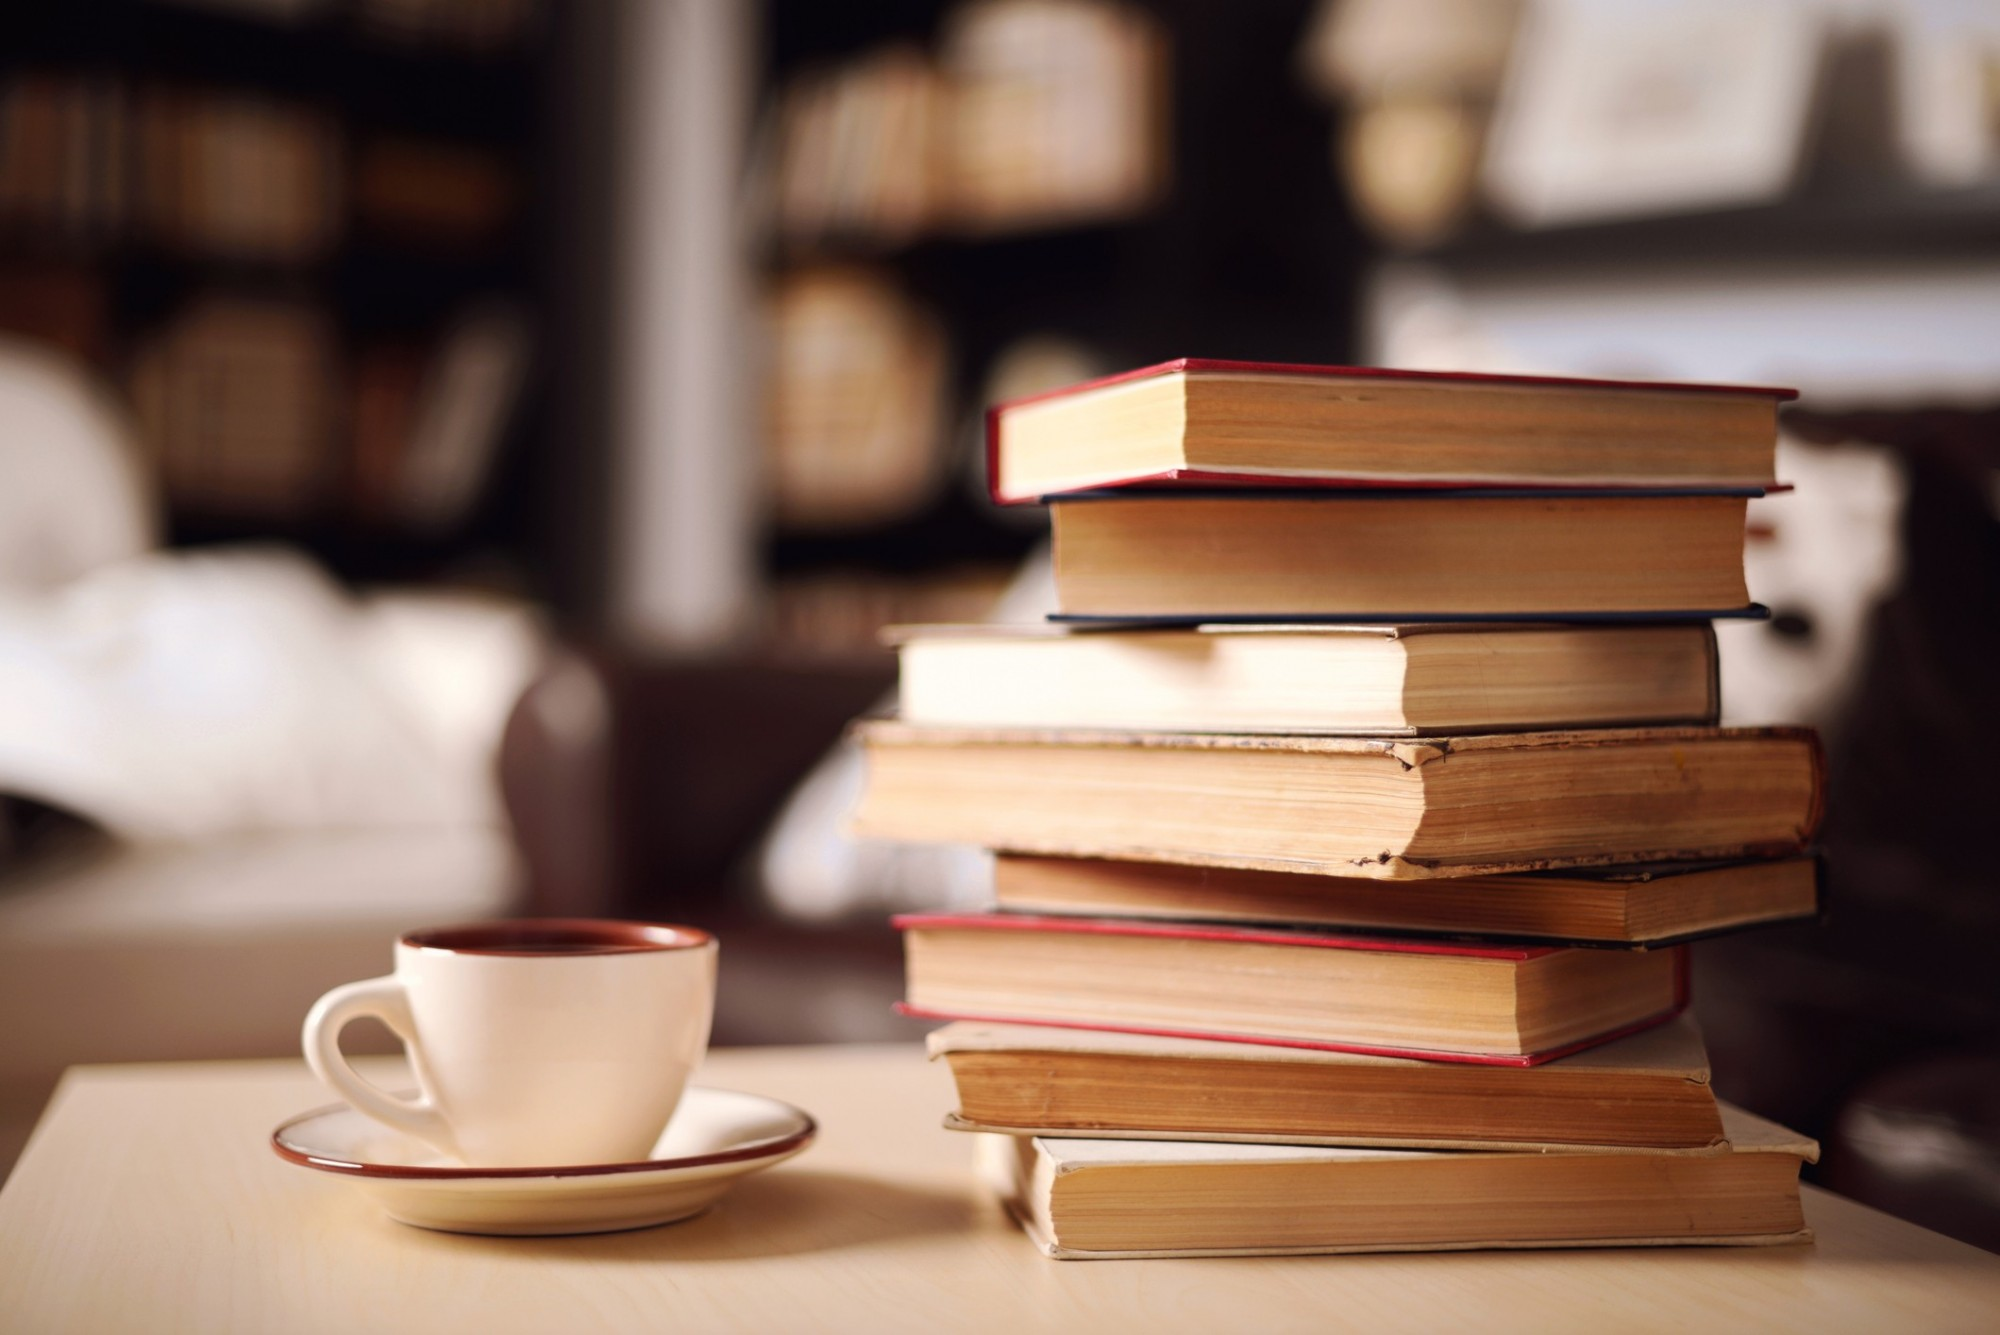 Pile of books next to a teacup on a table